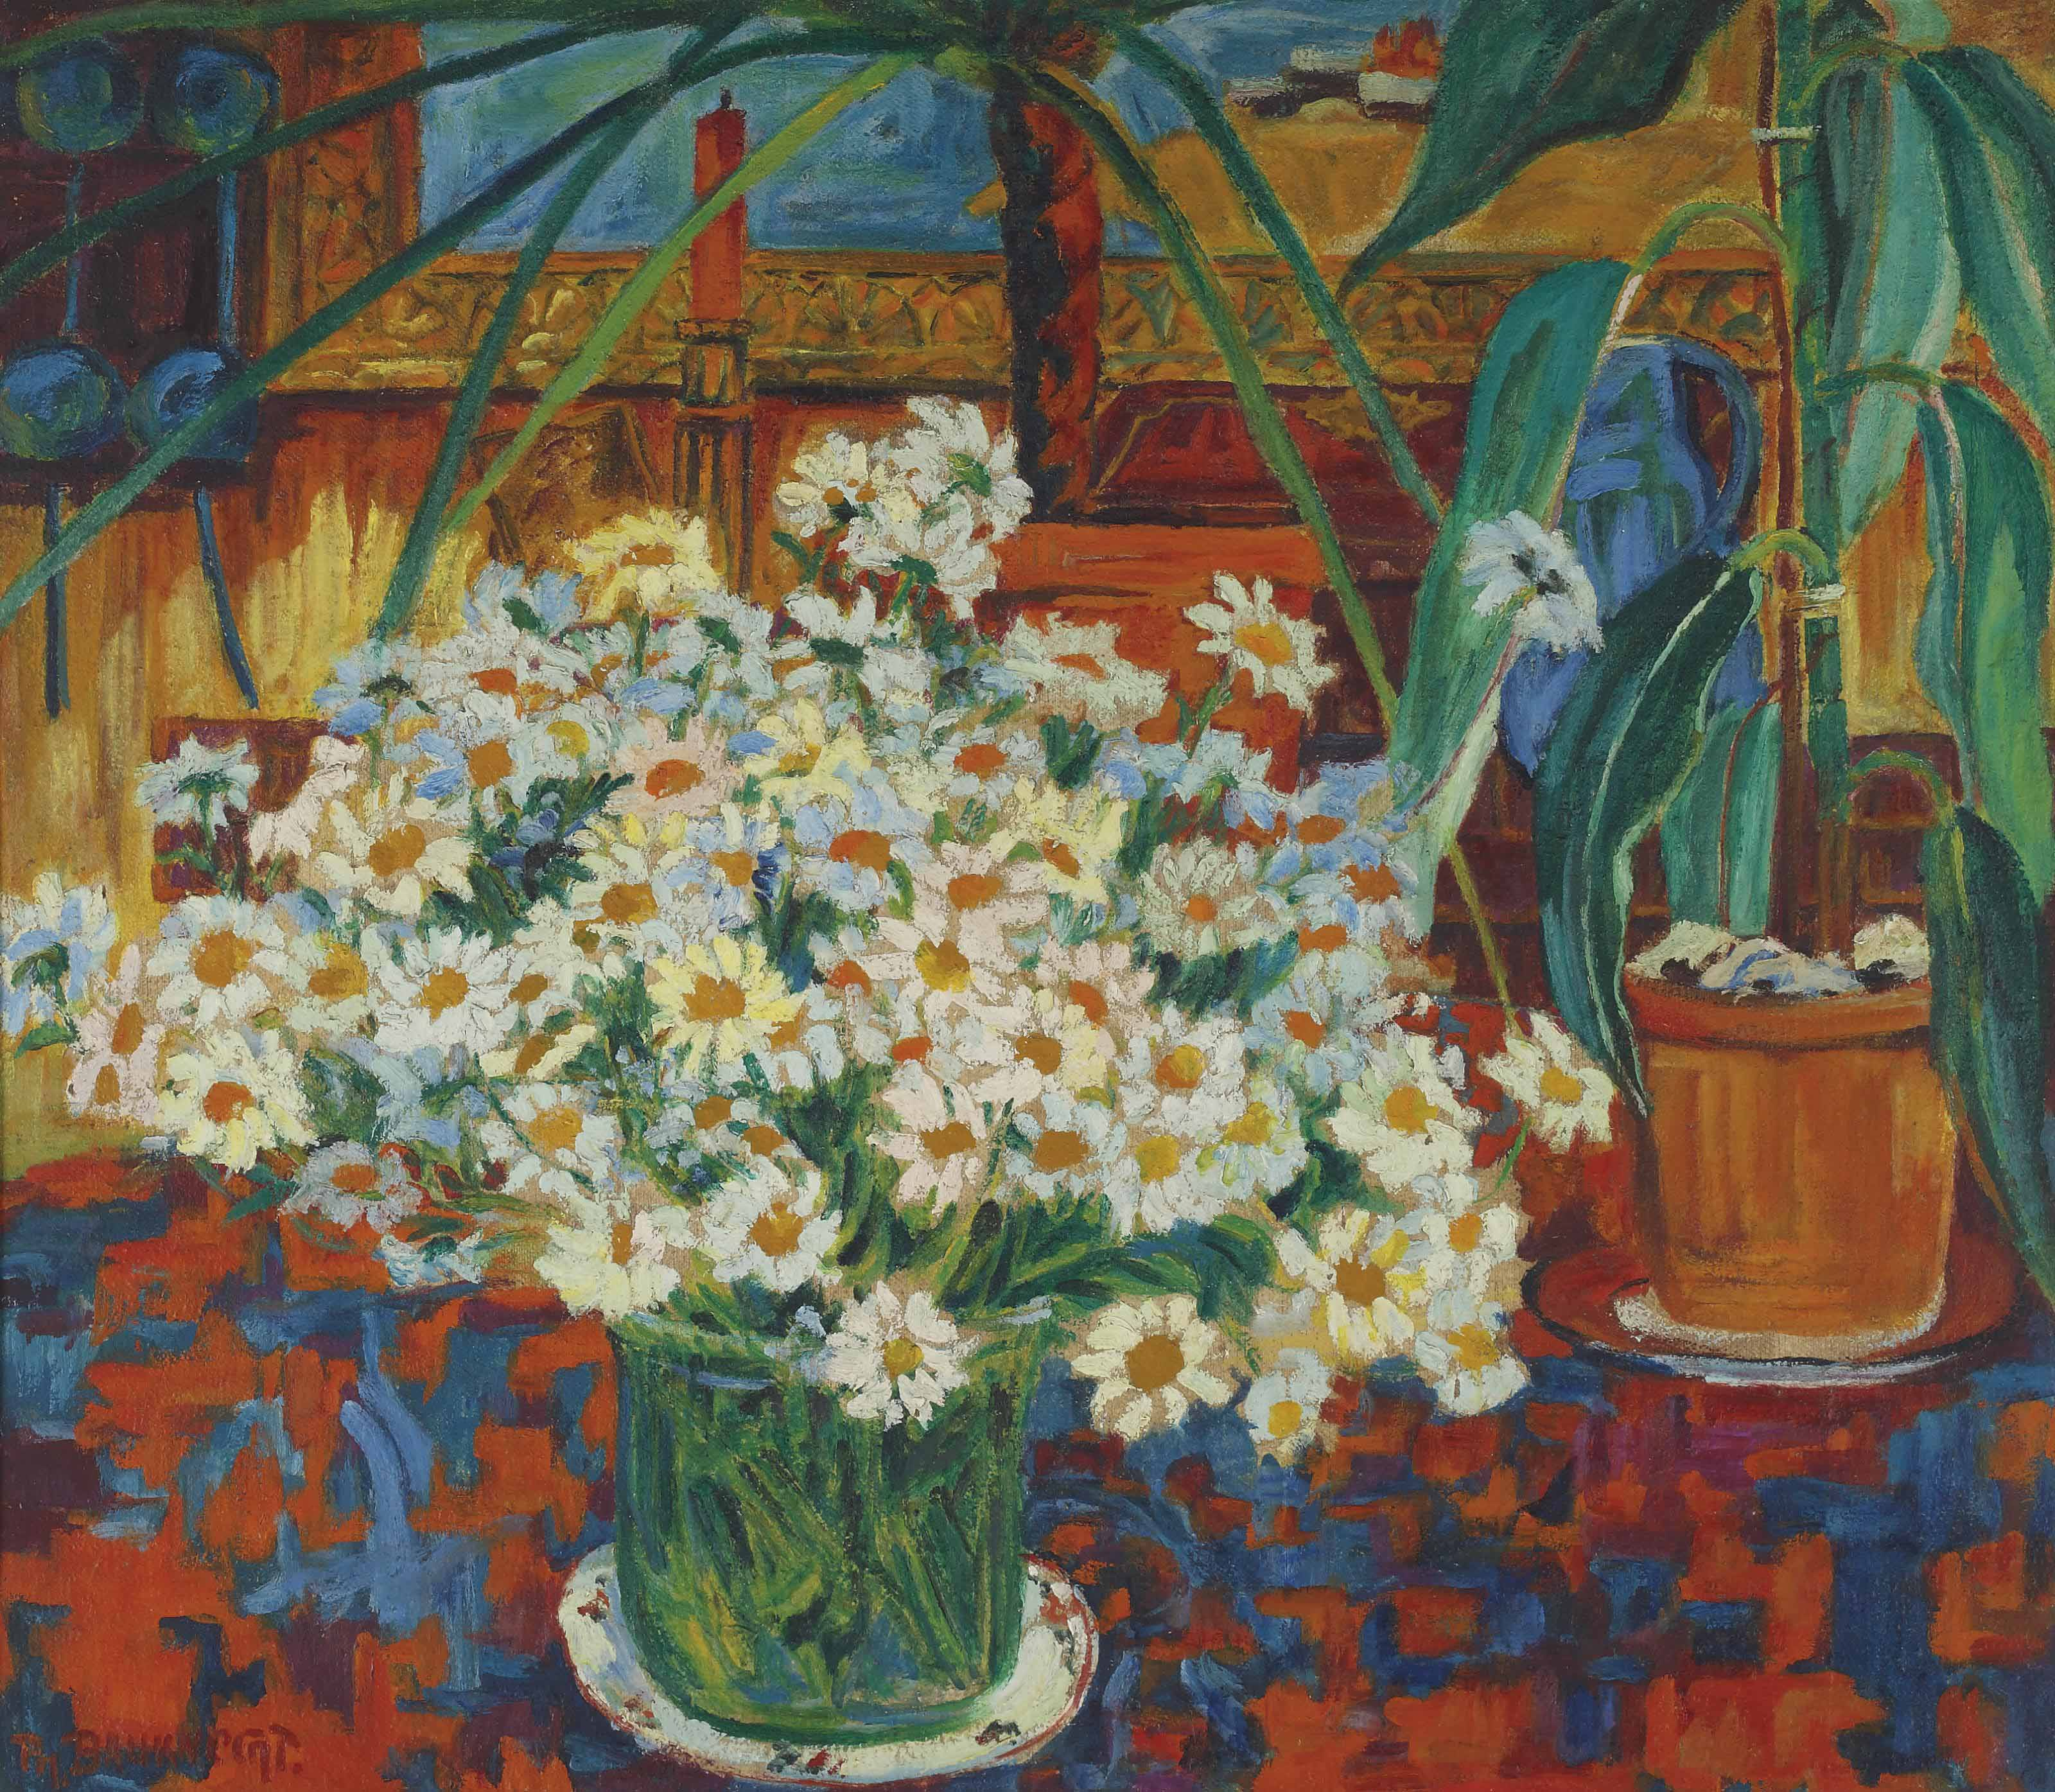 Still life with flowers in an interior